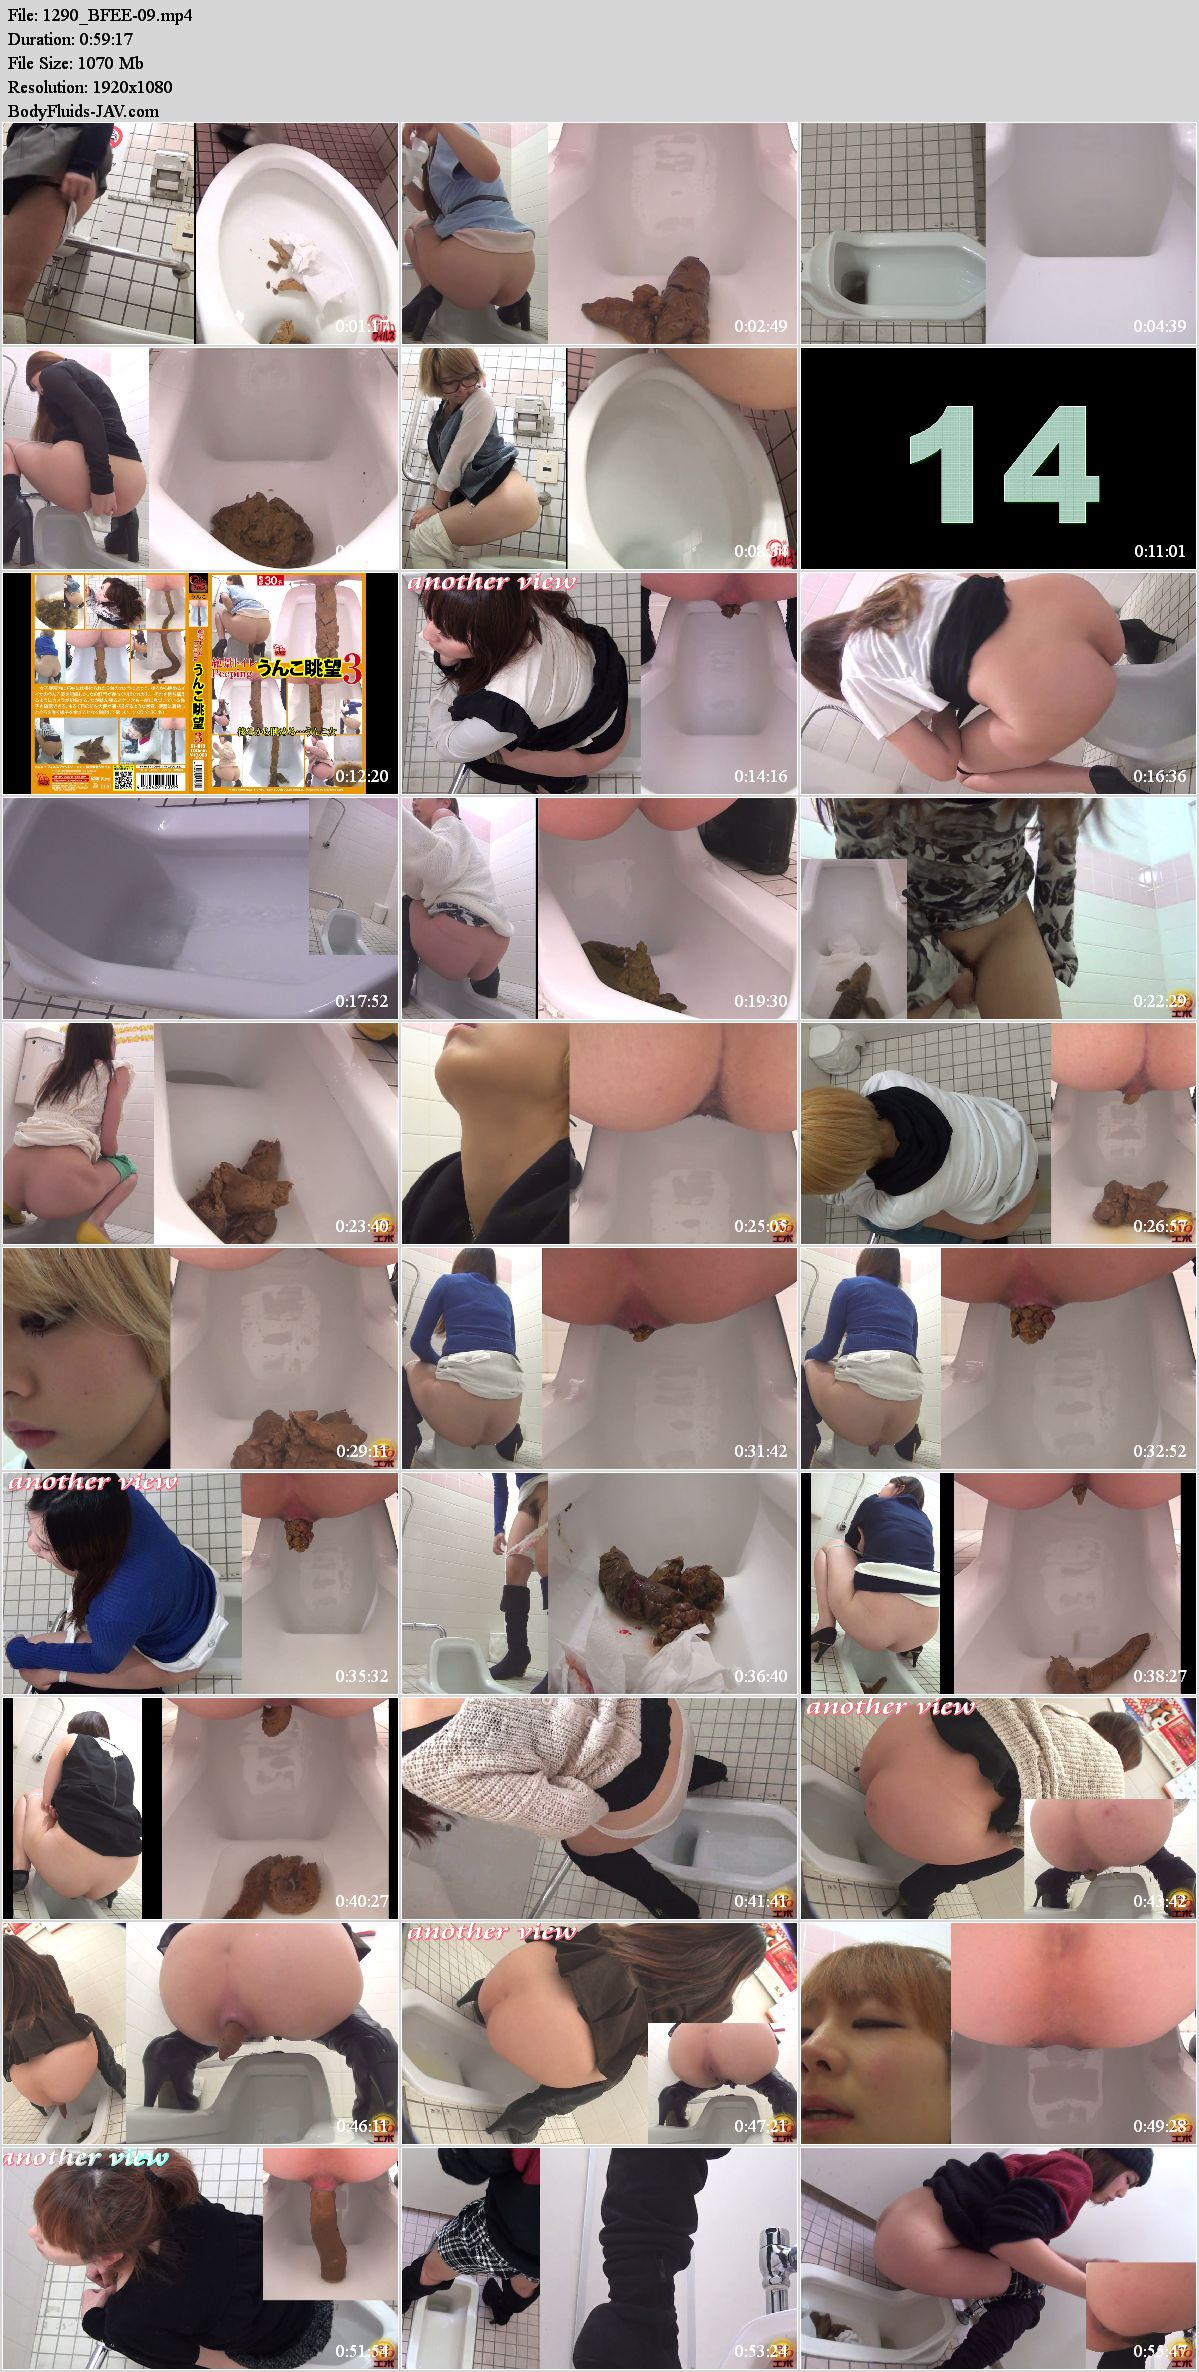 BFEE-09 Best collection pooping girls in toilet. (HD 1080p)